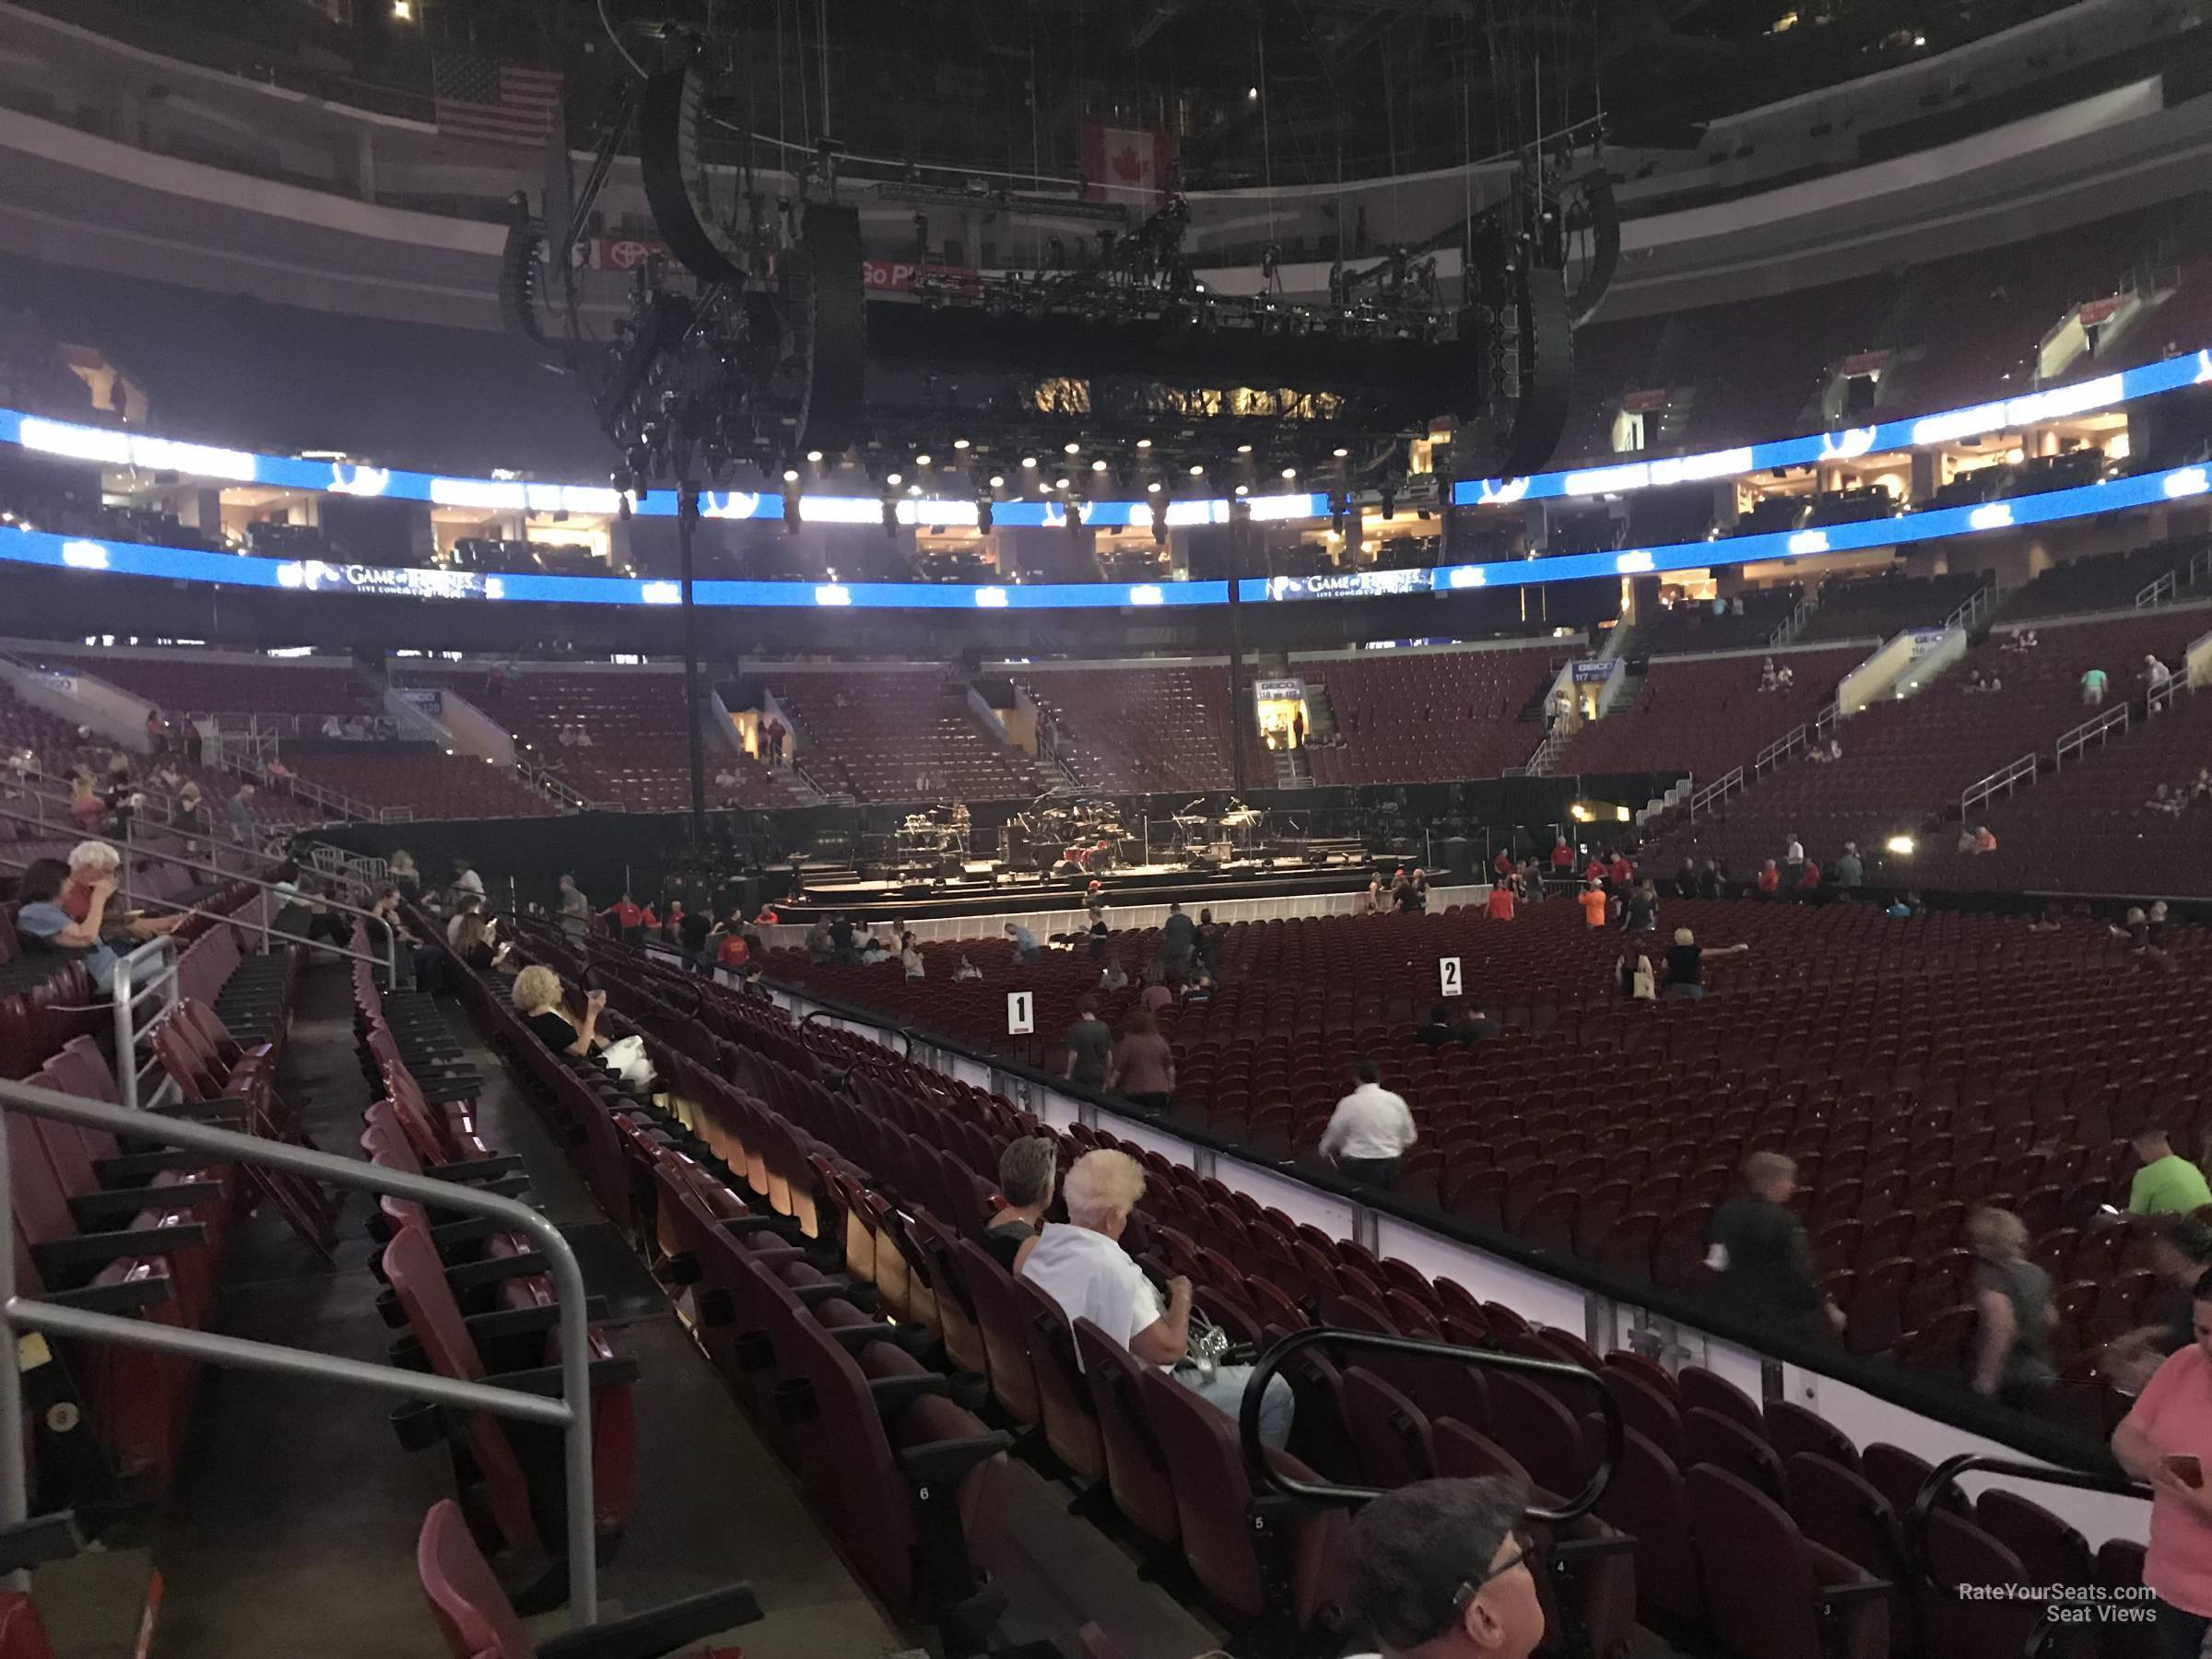 wells fargo center section 103 concert seating rateyourseats com